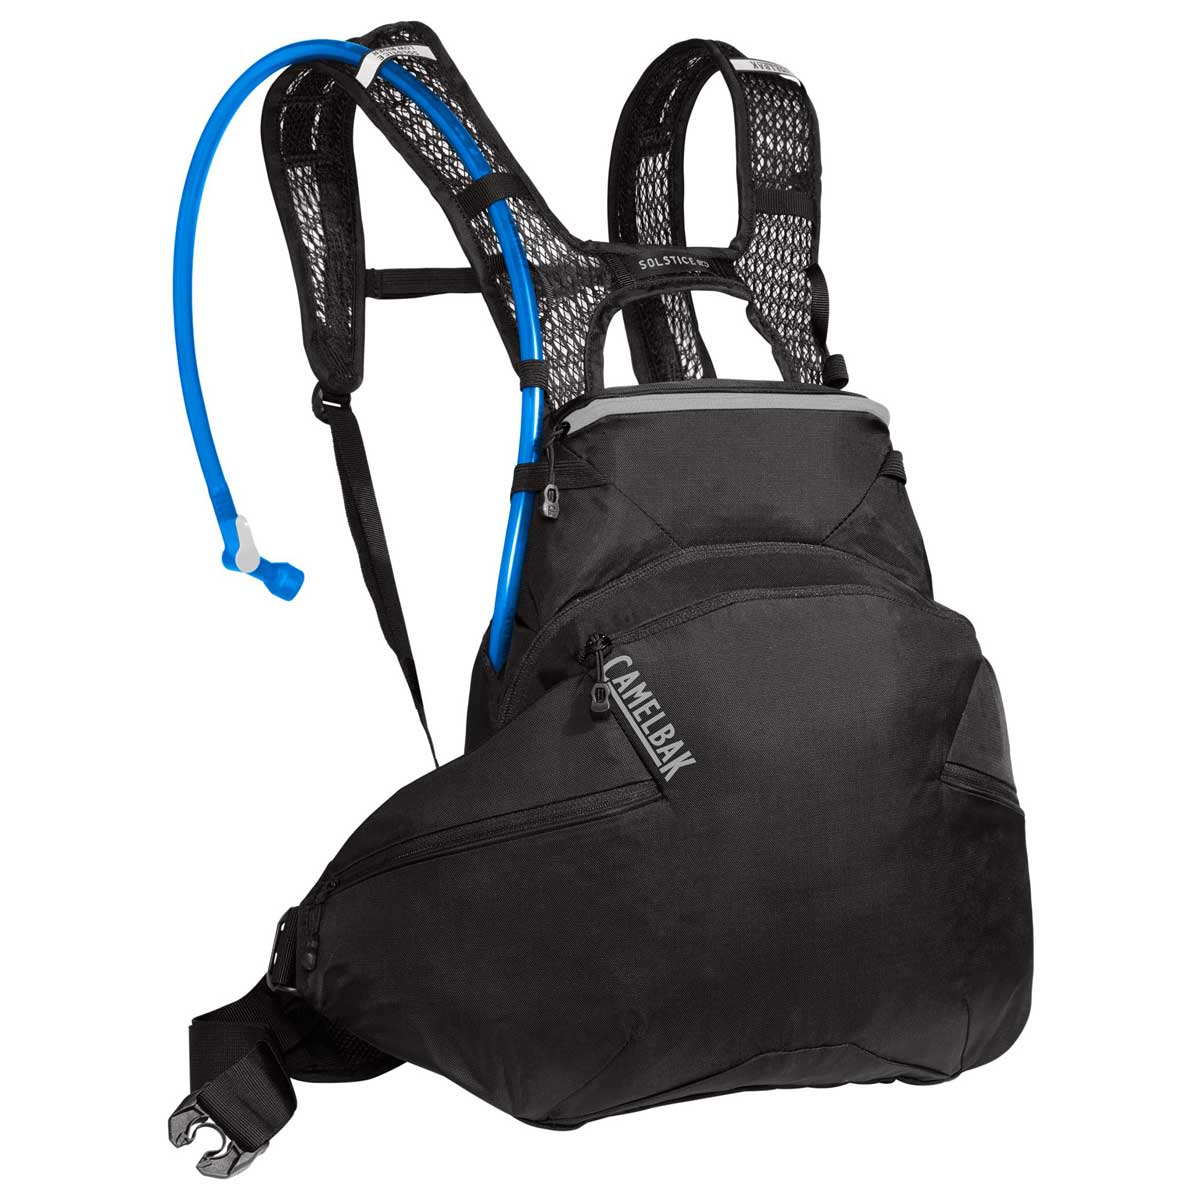 CamelBak Women's Solstice 10 LR Pack in Black and Silver